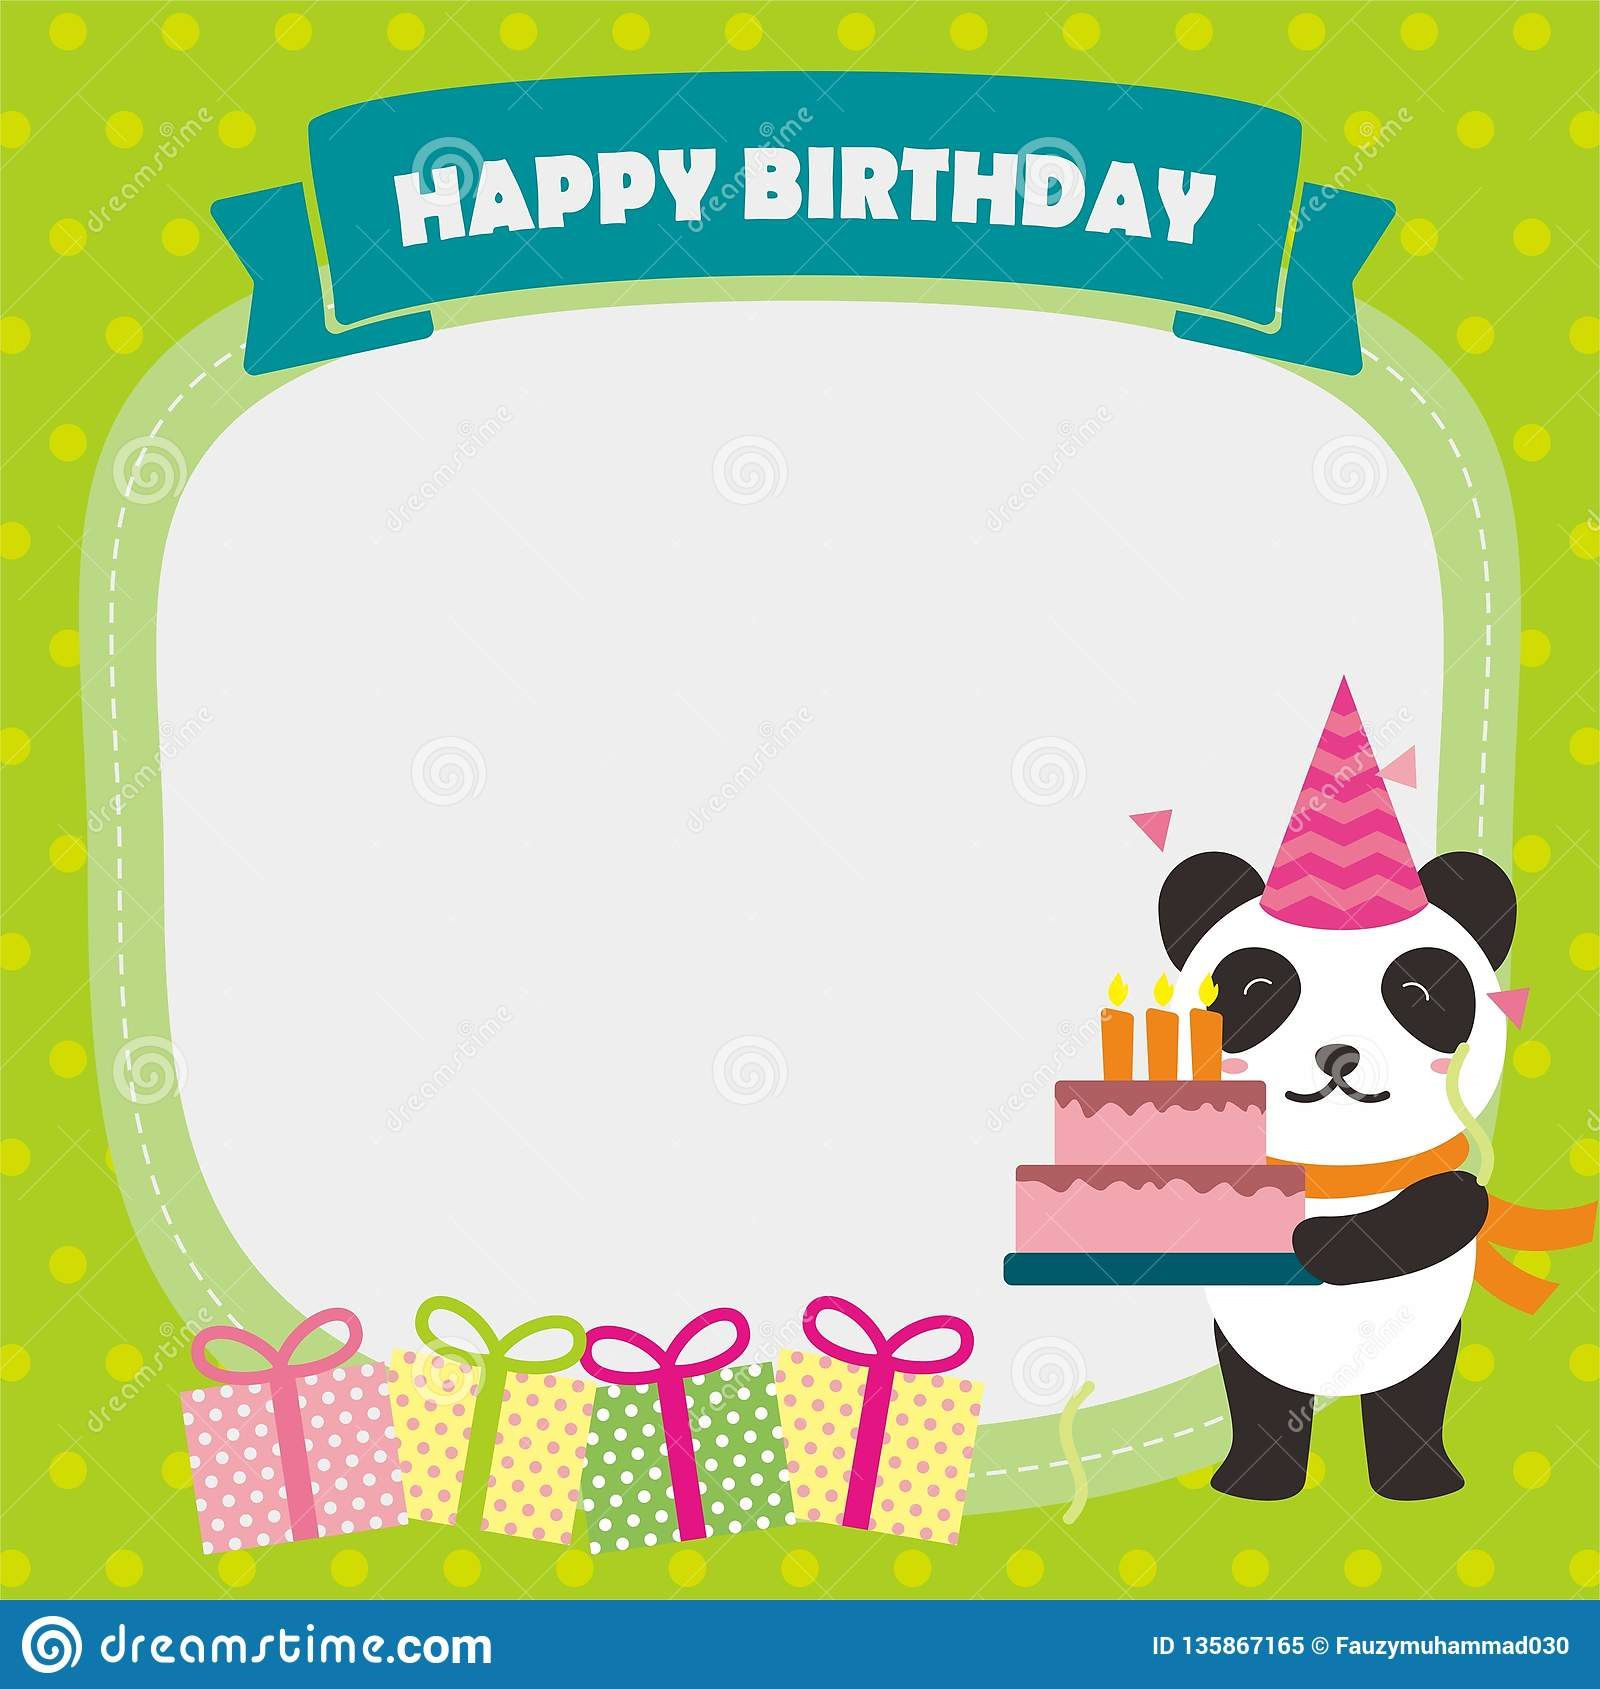 004 Top Template For Birthday Card Highest Clarity  Happy InvitationFull